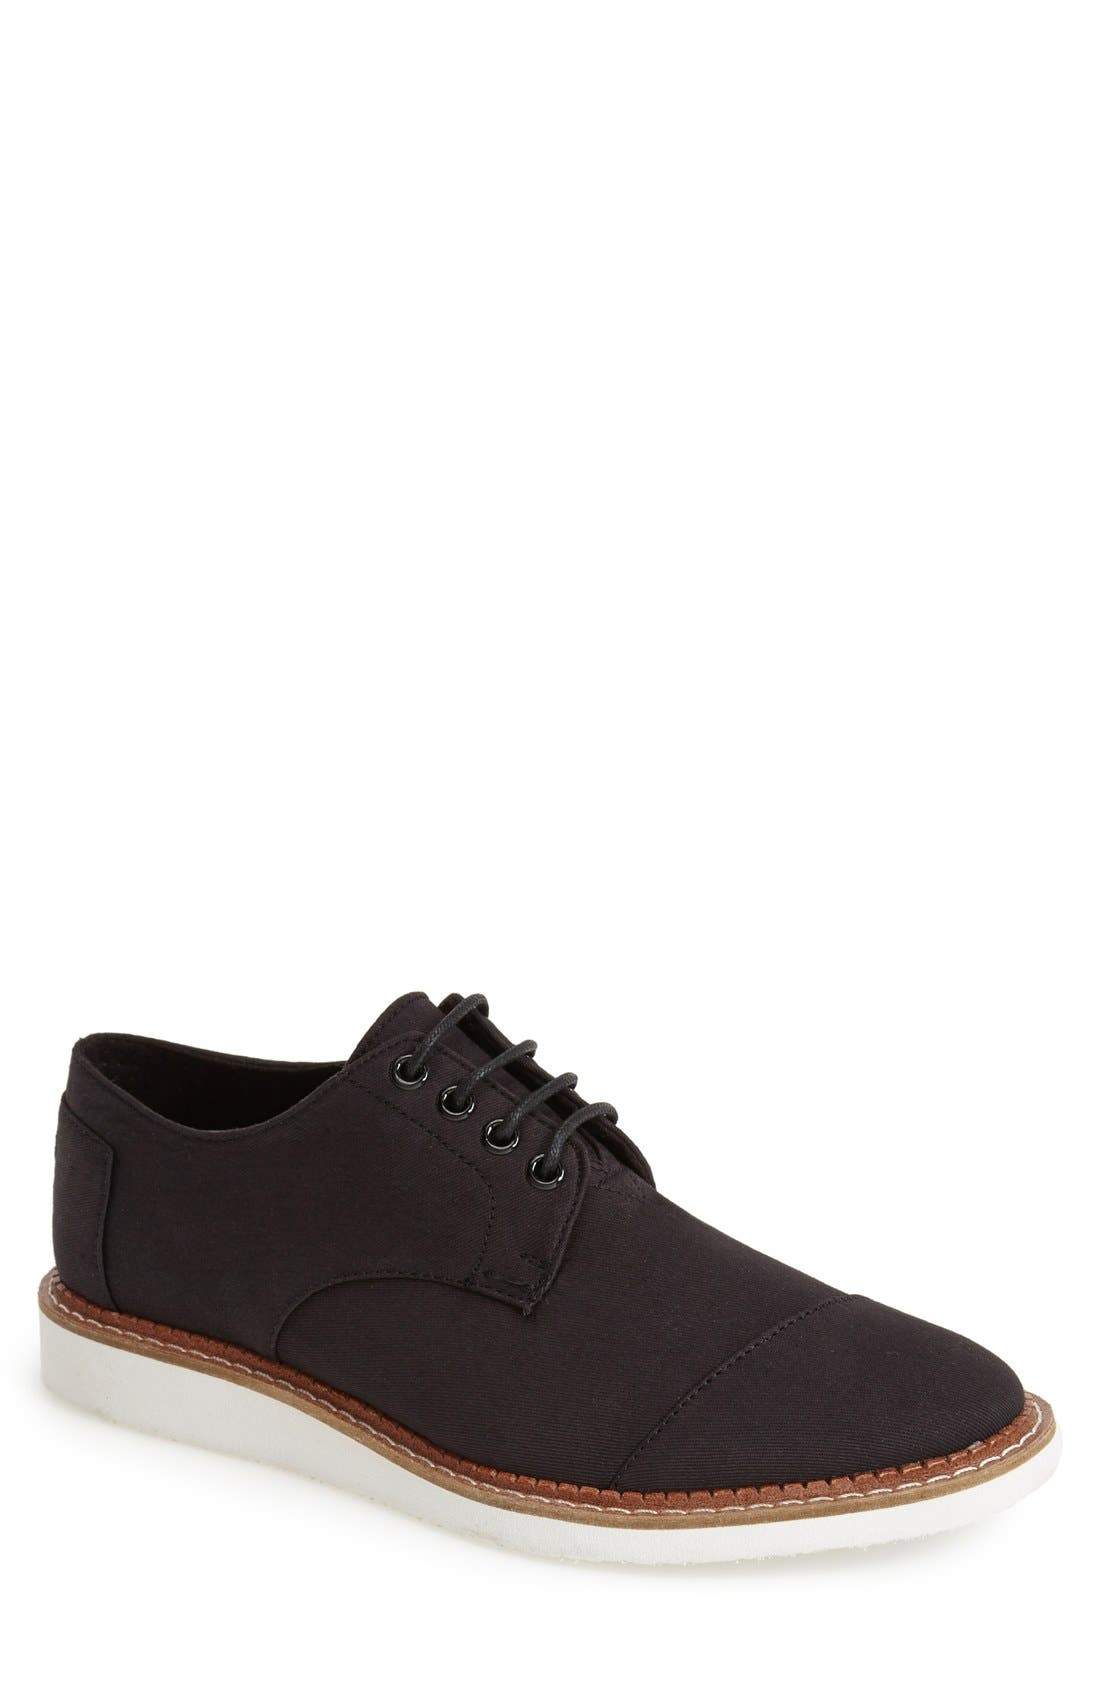 'Classic Brogue' Cotton Twill Derby,                             Main thumbnail 1, color,